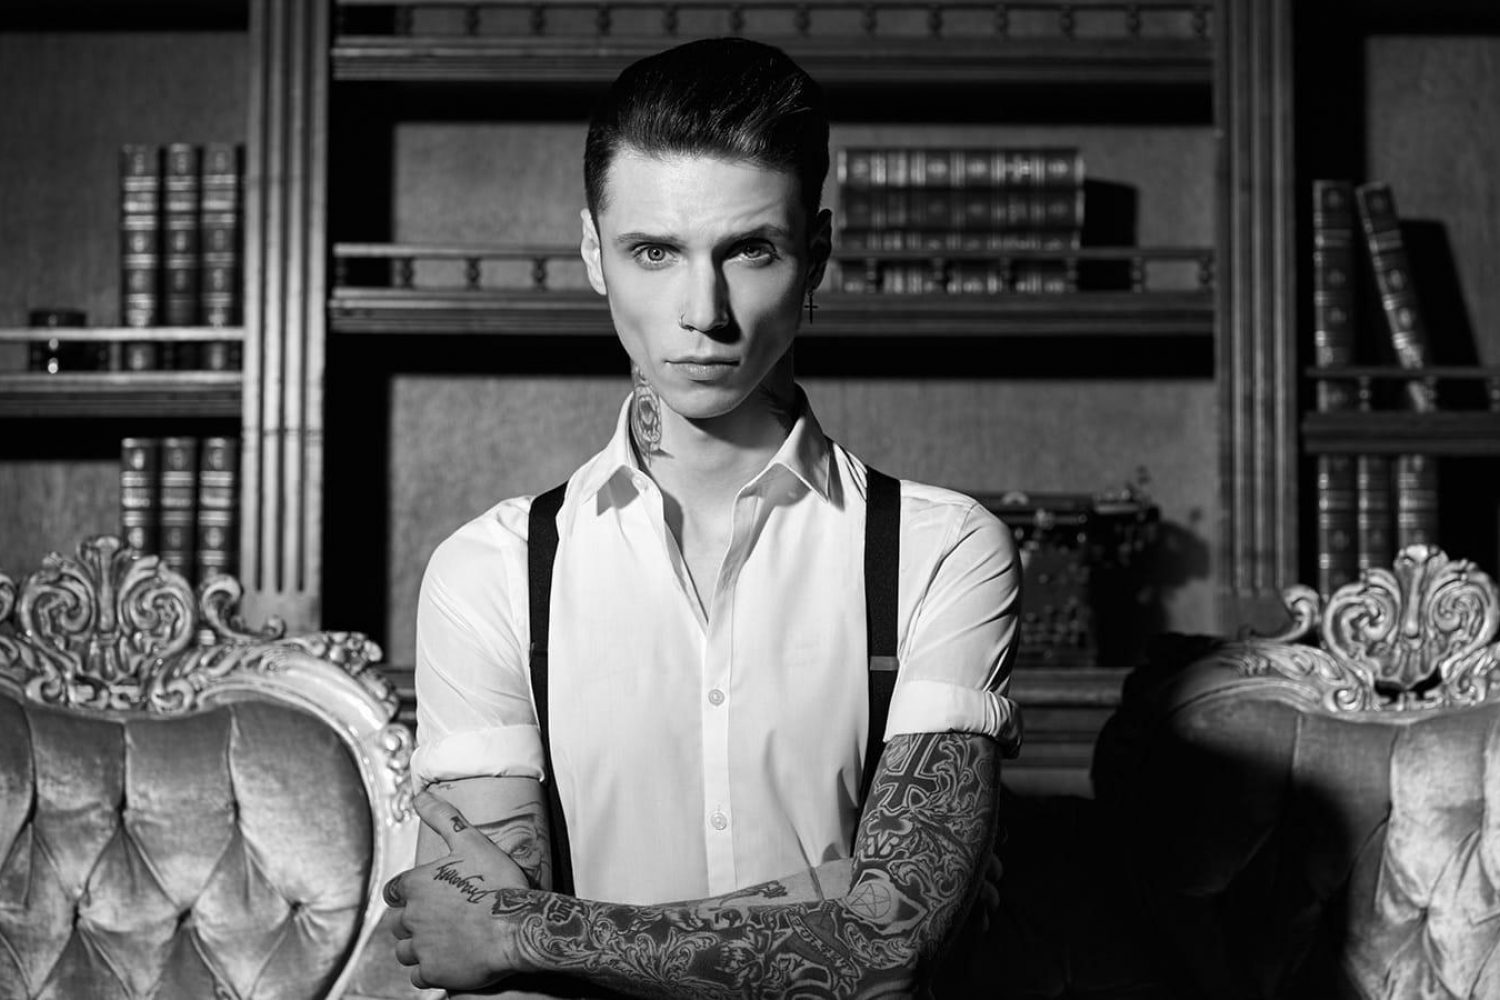 Does Andy Black have new music coming this Friday?